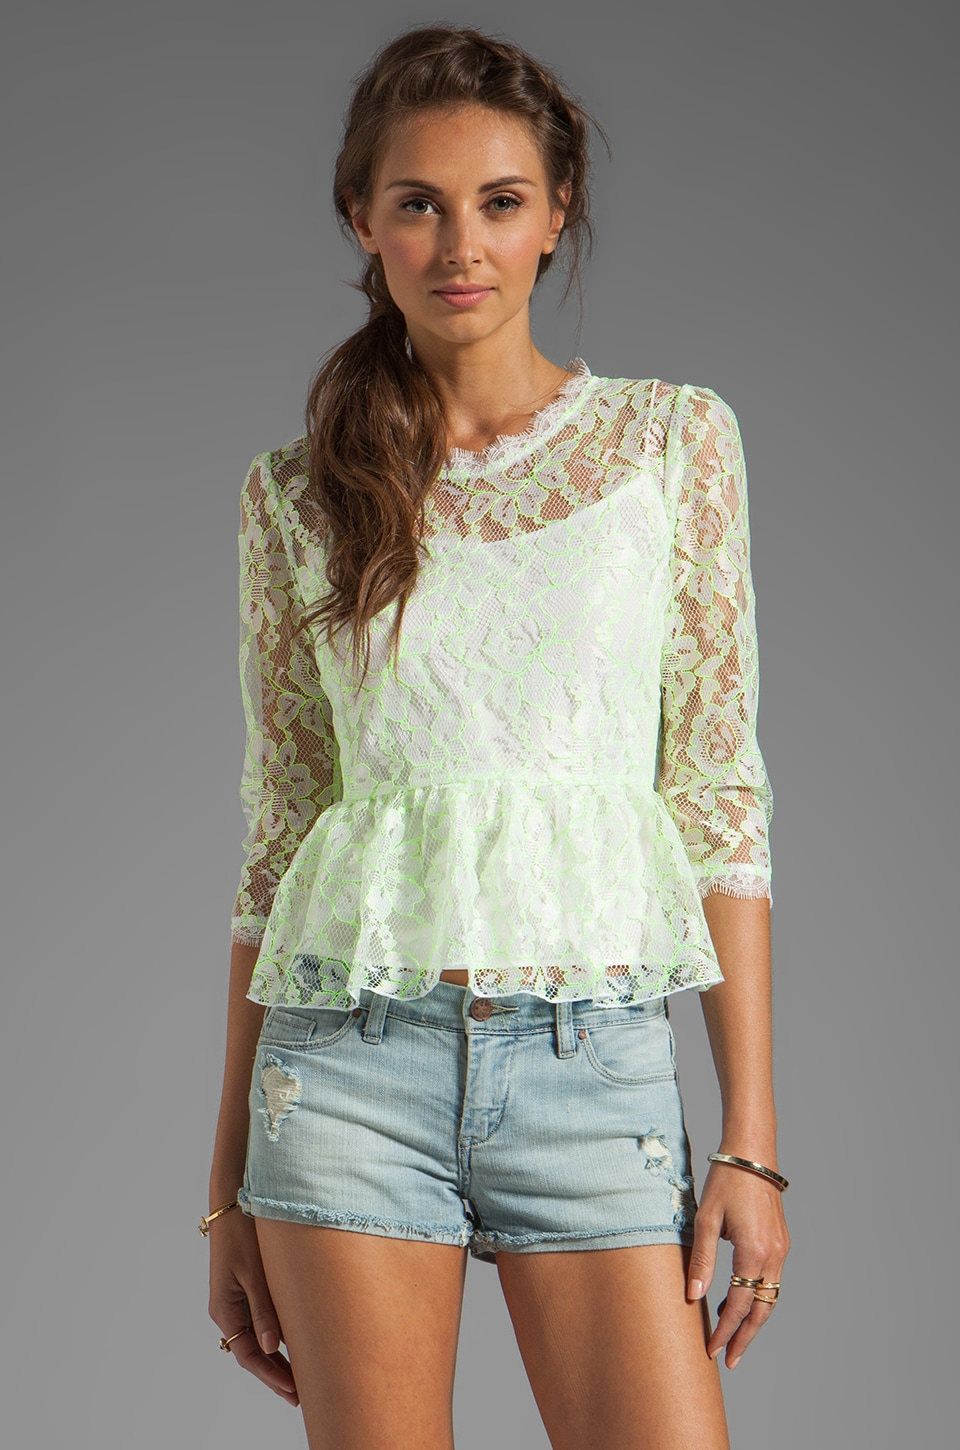 Dolce Vita Ceri Lace Peplum Top in White/Yellow